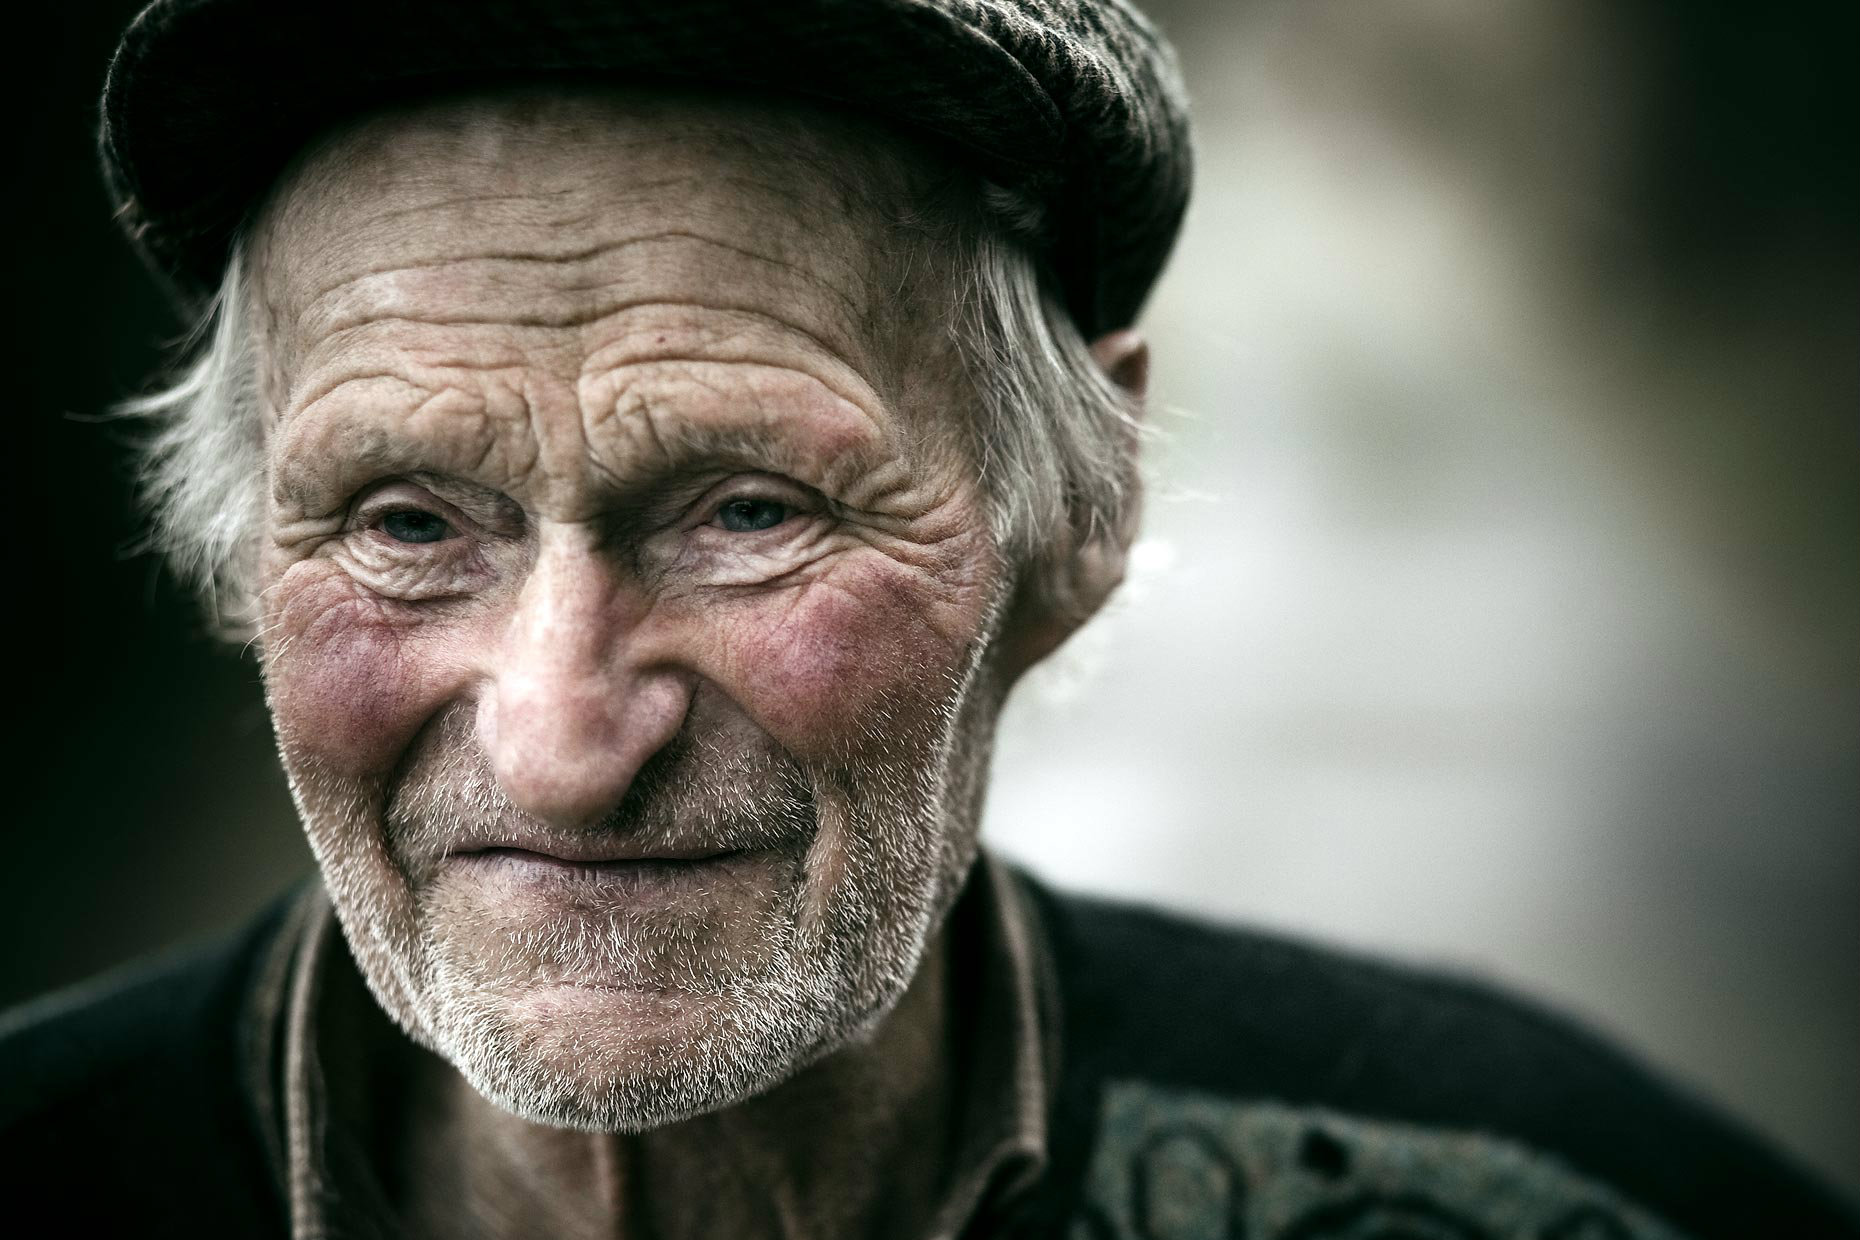 Ireland_faces_portrait_wool_travel.jpg